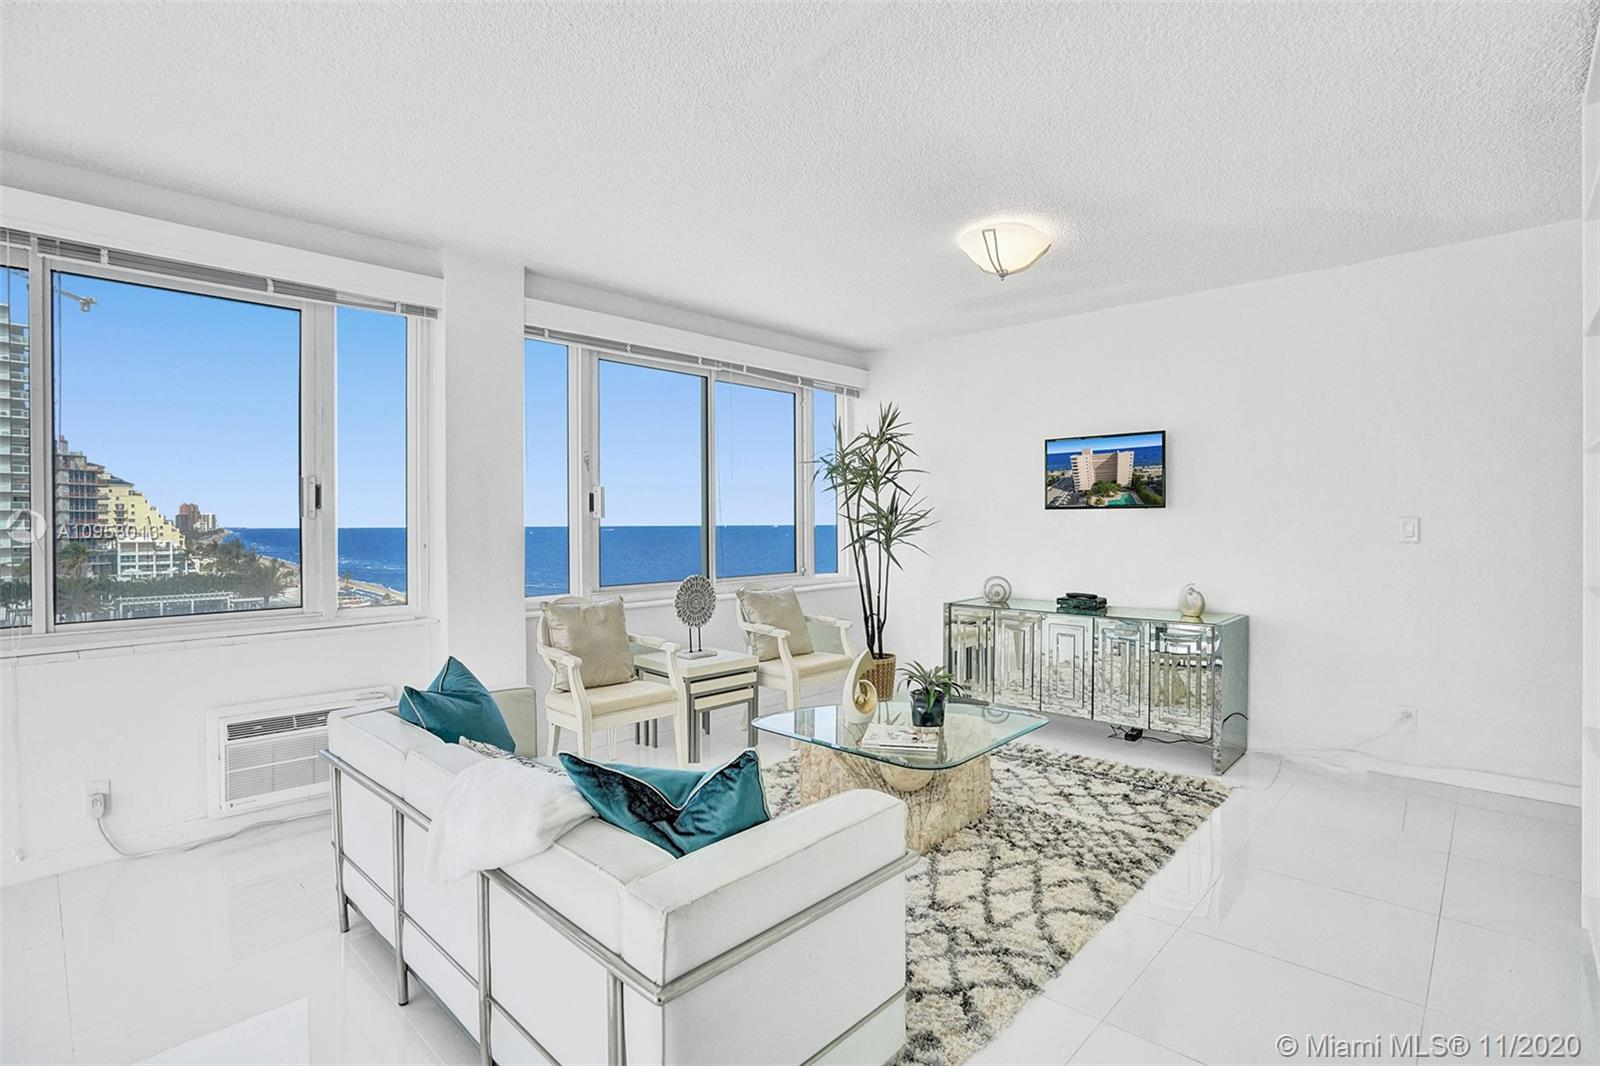 Incredible Updated Beachfront corner condo in a true Mid Century Modern building! Drink your coffee in the great room & head down for morning Sunrises over the Atlantic Ocean & walk the Beach. Dine overlooking Intracoastal for evening Sunsets! Open Concept for views everywhere. Corner Windows include Downtown Skyline & Pool at the W. White Porcelain Flooring throughout. Updated Kitchen with JENN AIR Stainless Appliances, Quartz Counters & Bosch Washer / Dryer in your condo. Updated Bathroom with walk in shower & frameless glass enclosure. Master Closet with built in drawers. Pet Friendly (smaller dogs ok) & offers a Heated Pool & BBQ. Located among top Hotels & Restaurants, walk to Birch State Park, Bonnet House & next to the W / Steak 954. Windows appear to be Impact, please inspect.